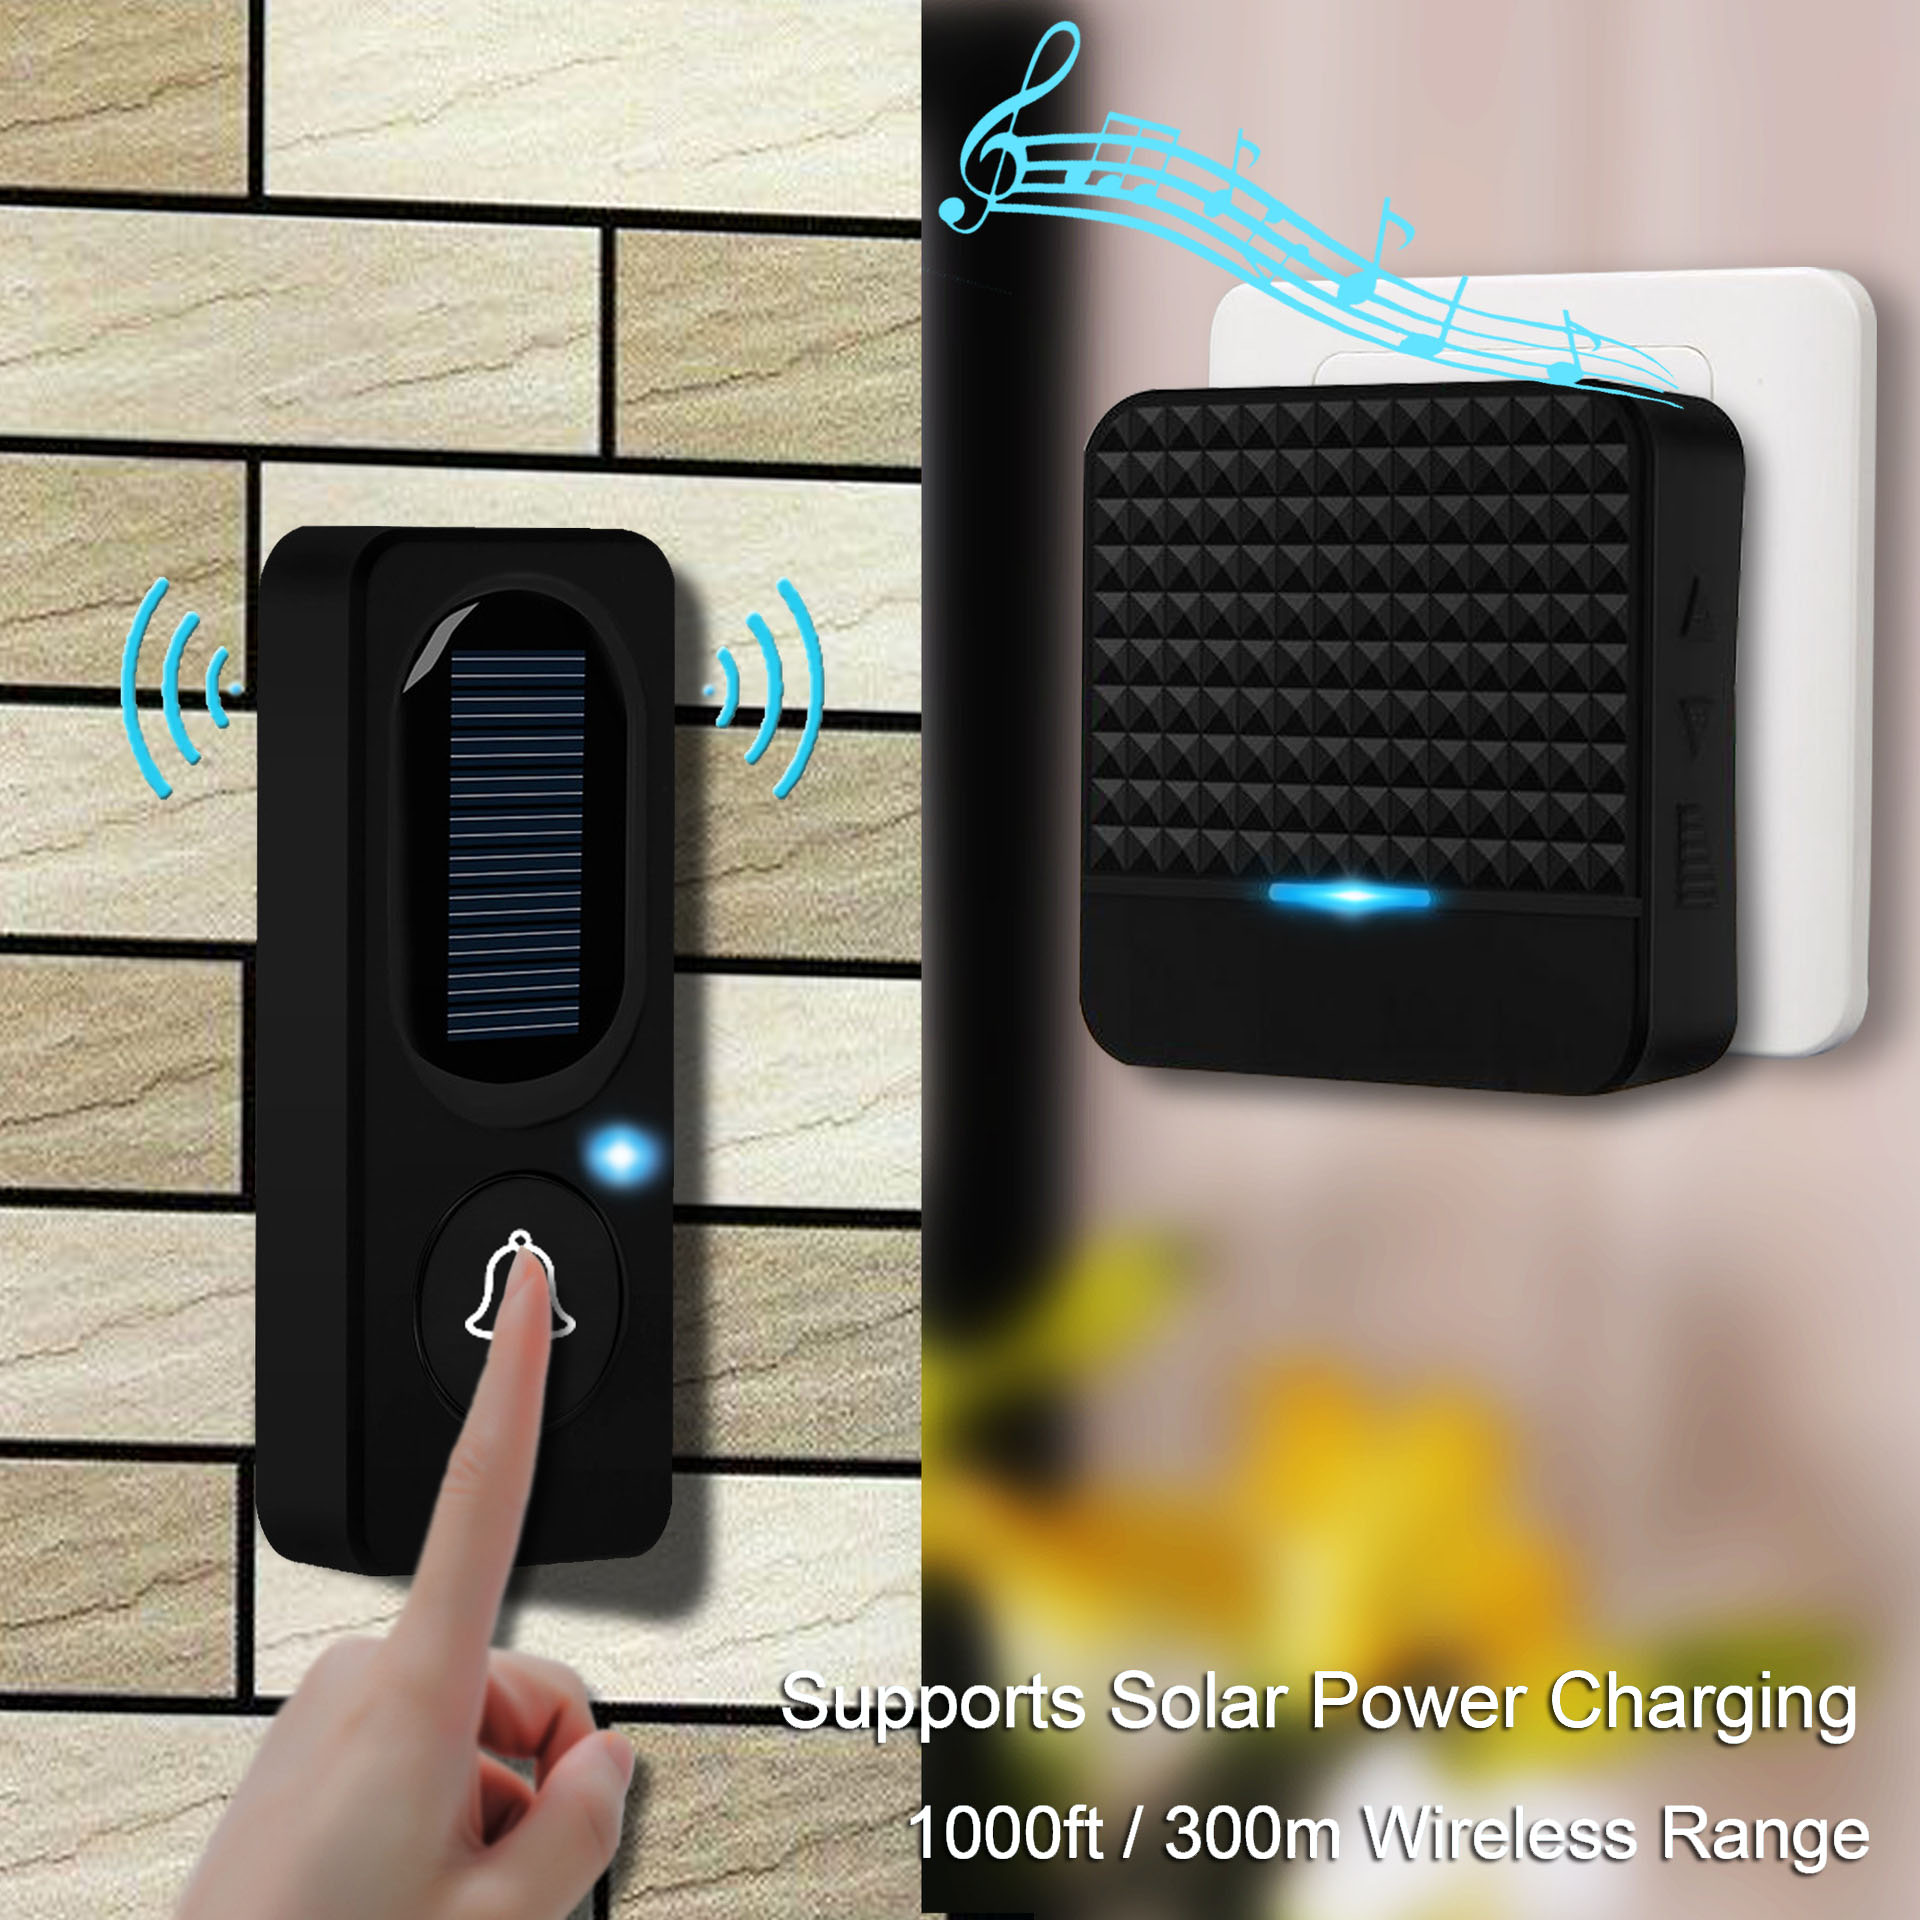 BOYING Solar Doorbell Home Security Welcome Wireless Waterproof Songs Button 1 Receiver 300M Supports Solar Power Charging